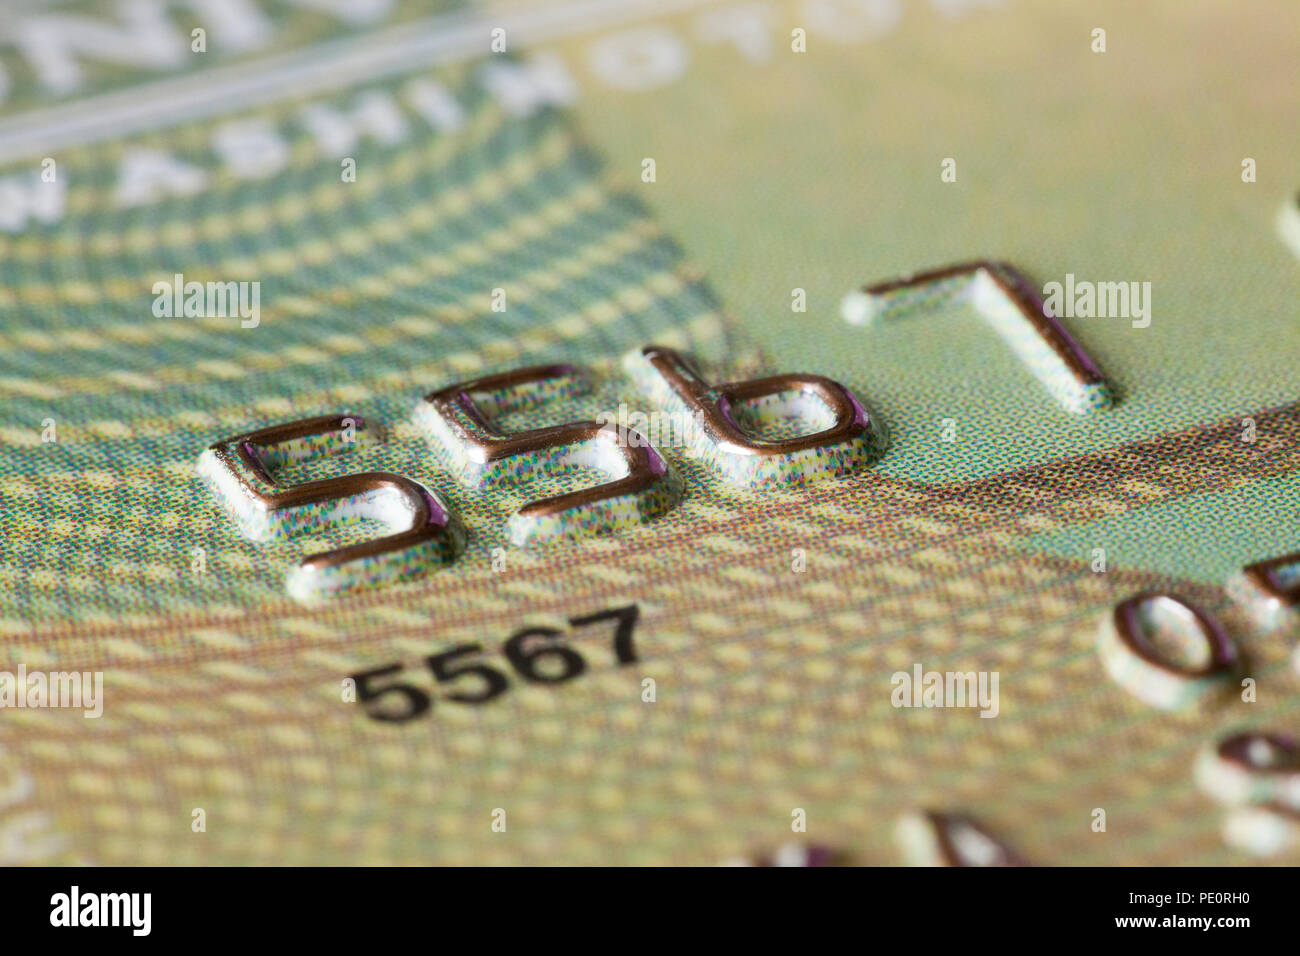 Embossed numbers on credit card close up - USA - Stock Image